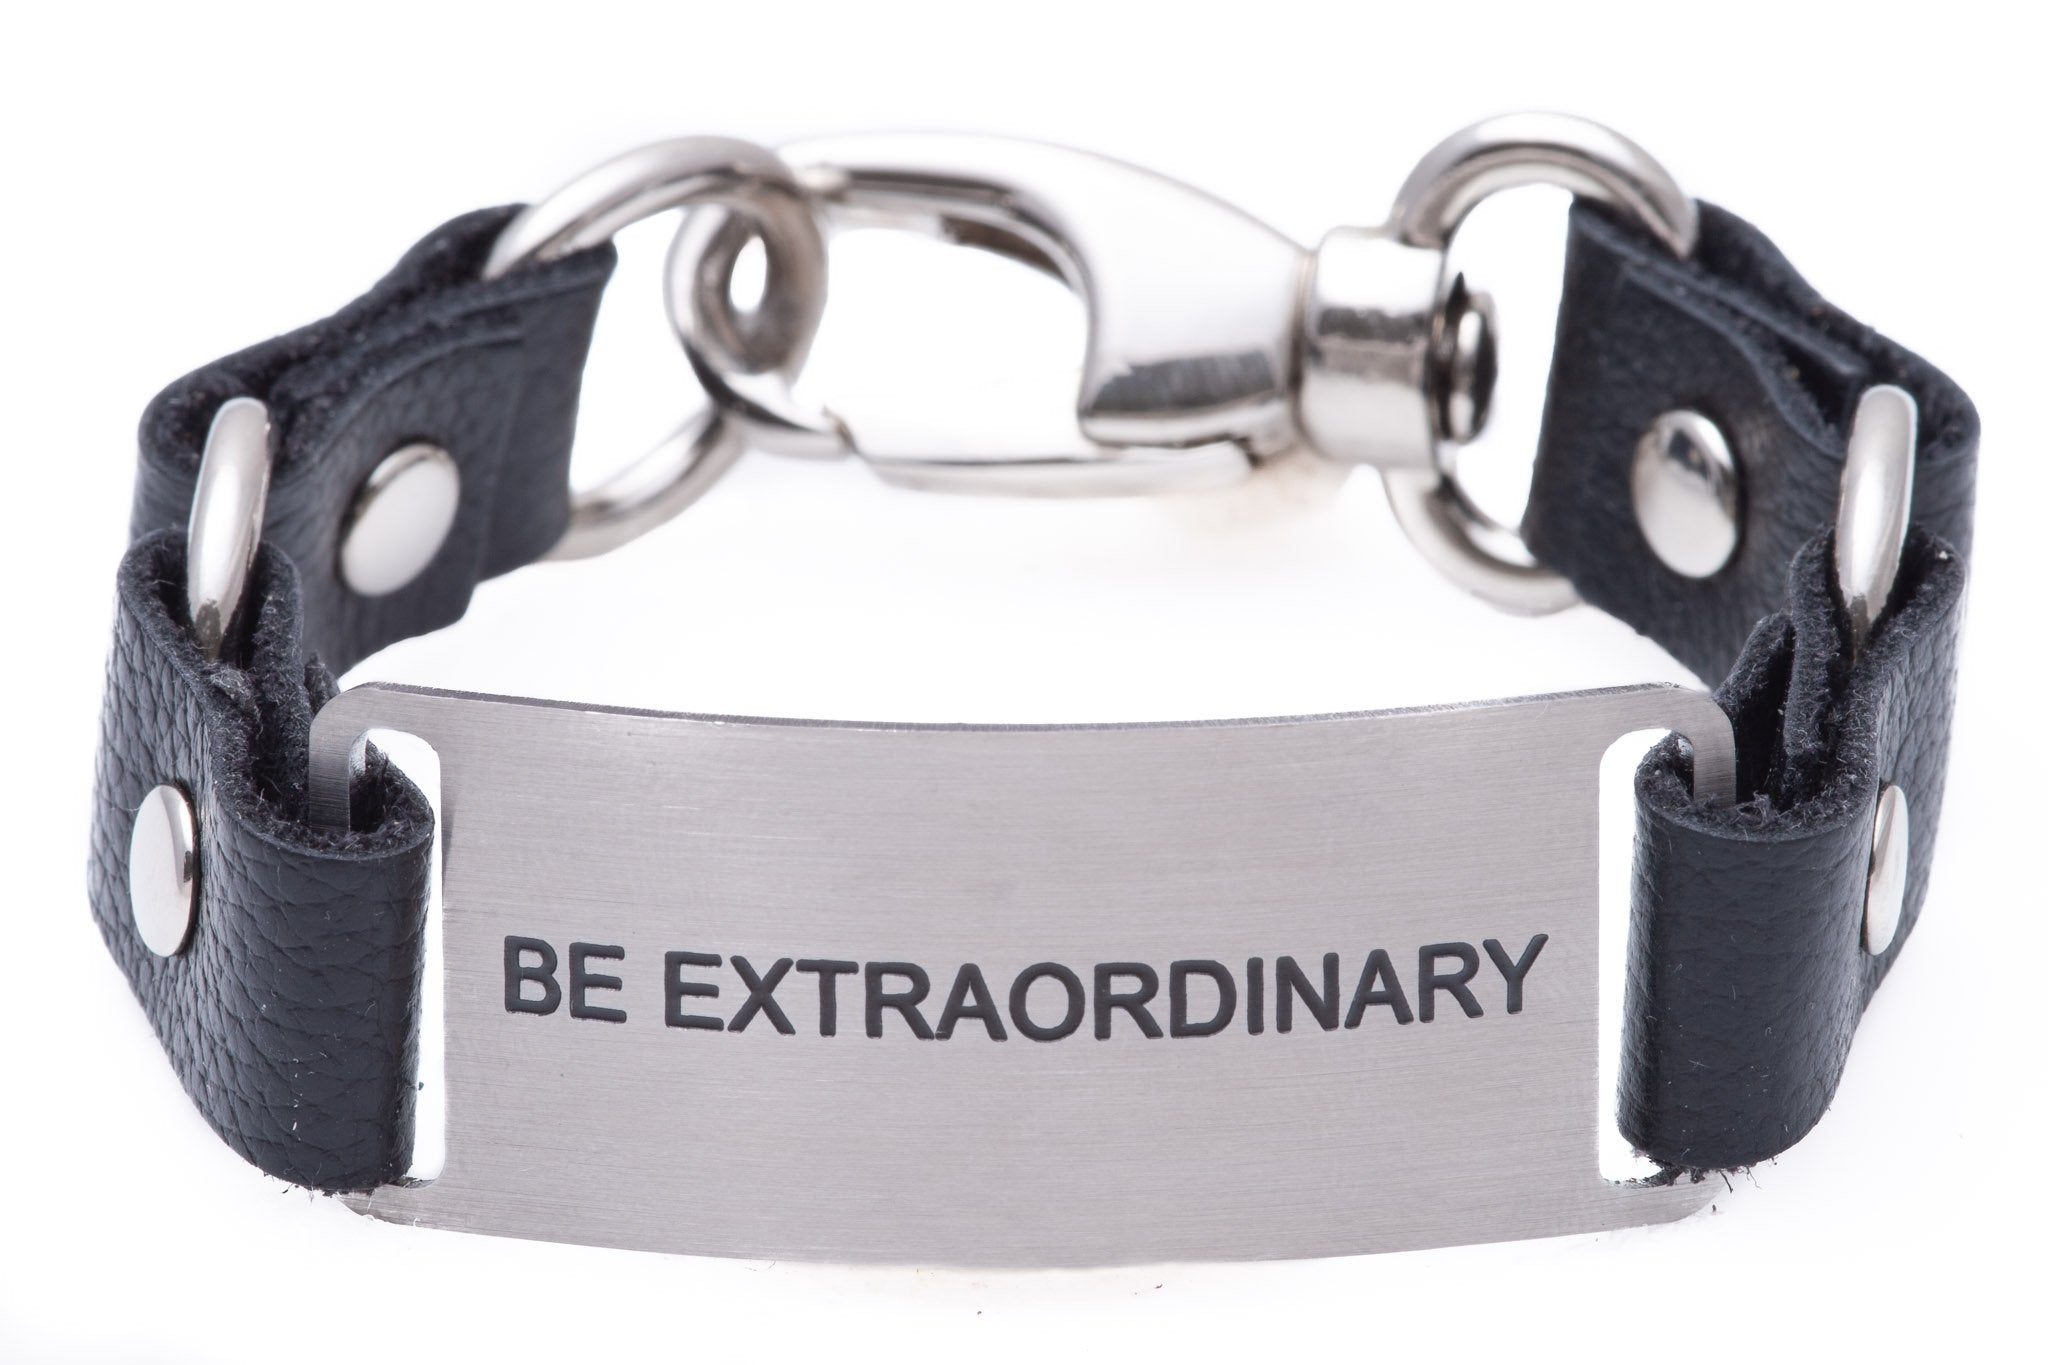 Load image into Gallery viewer, Message Bracelet Black Leather Be Extraordinary